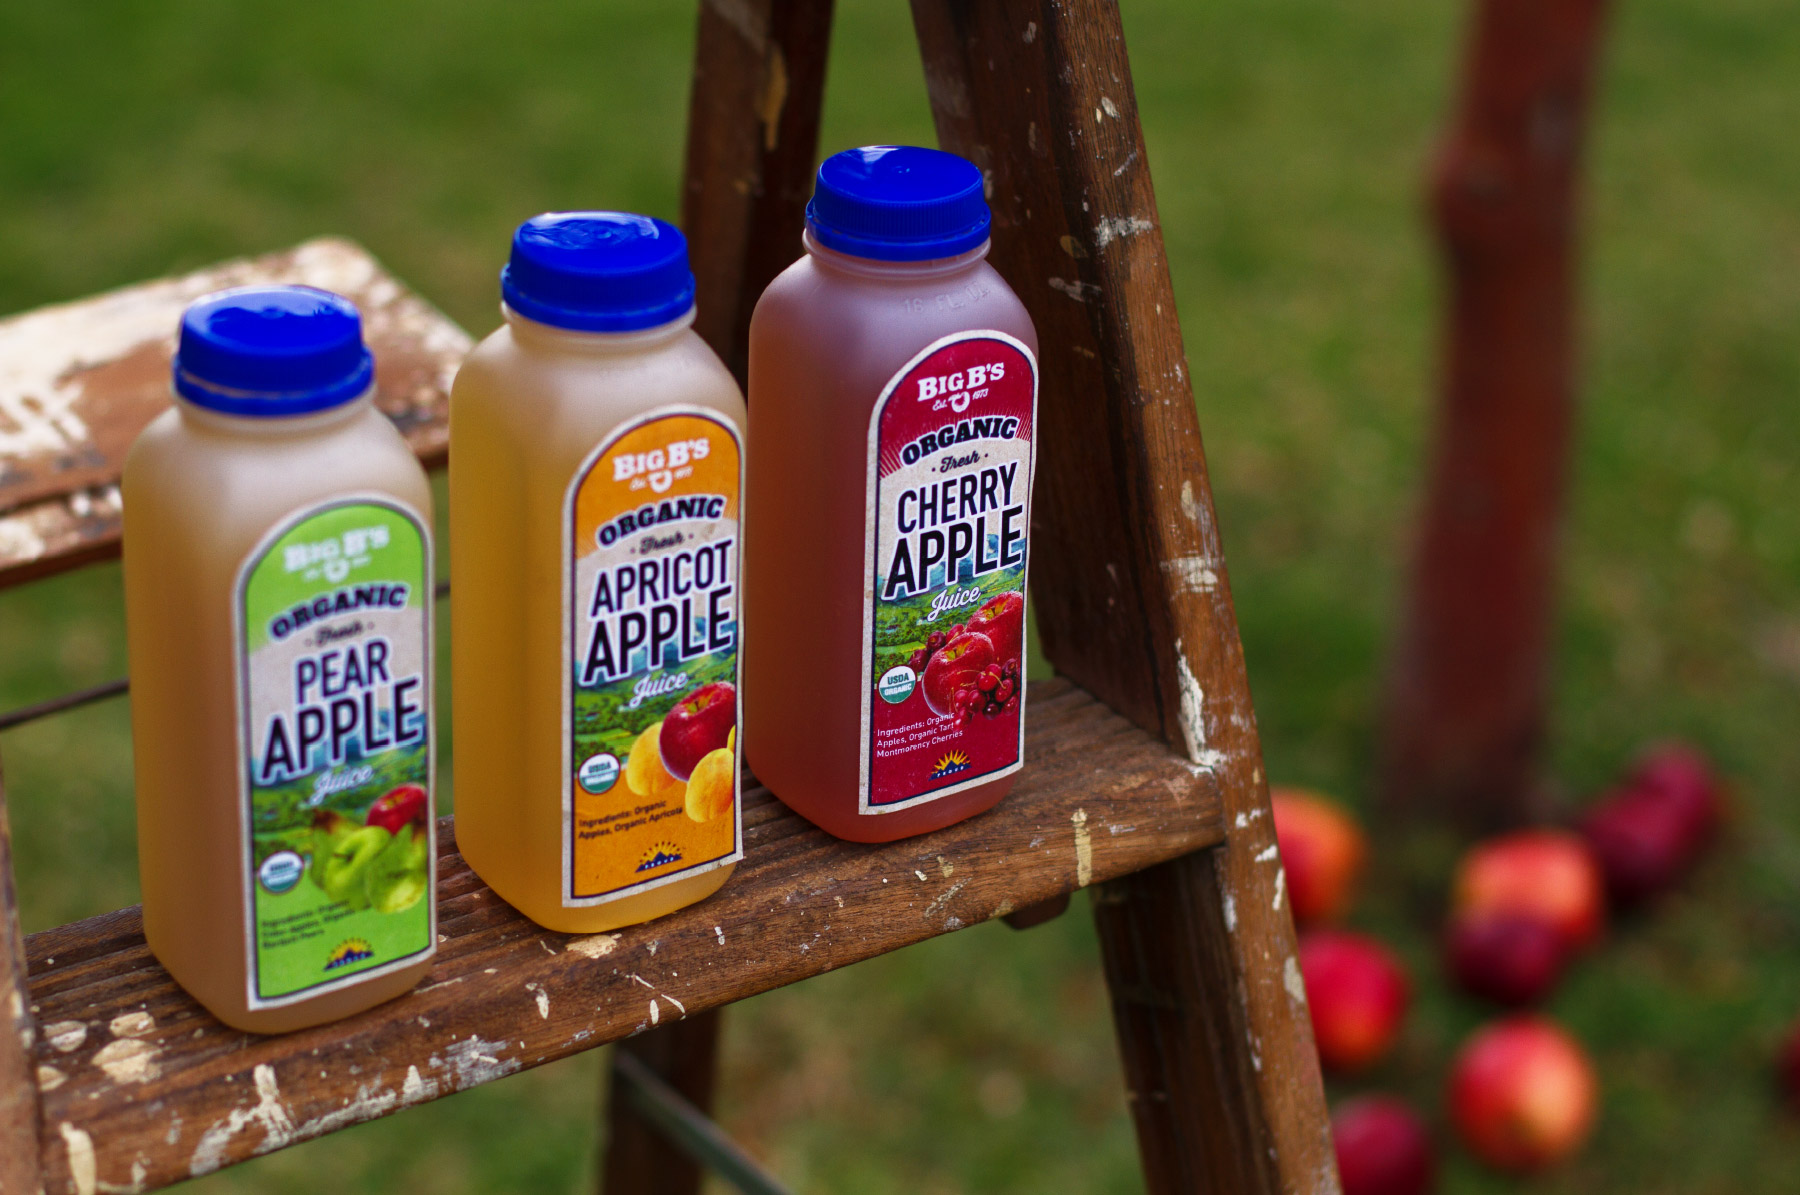 Pear, apricot, and cherry apple juice product photography